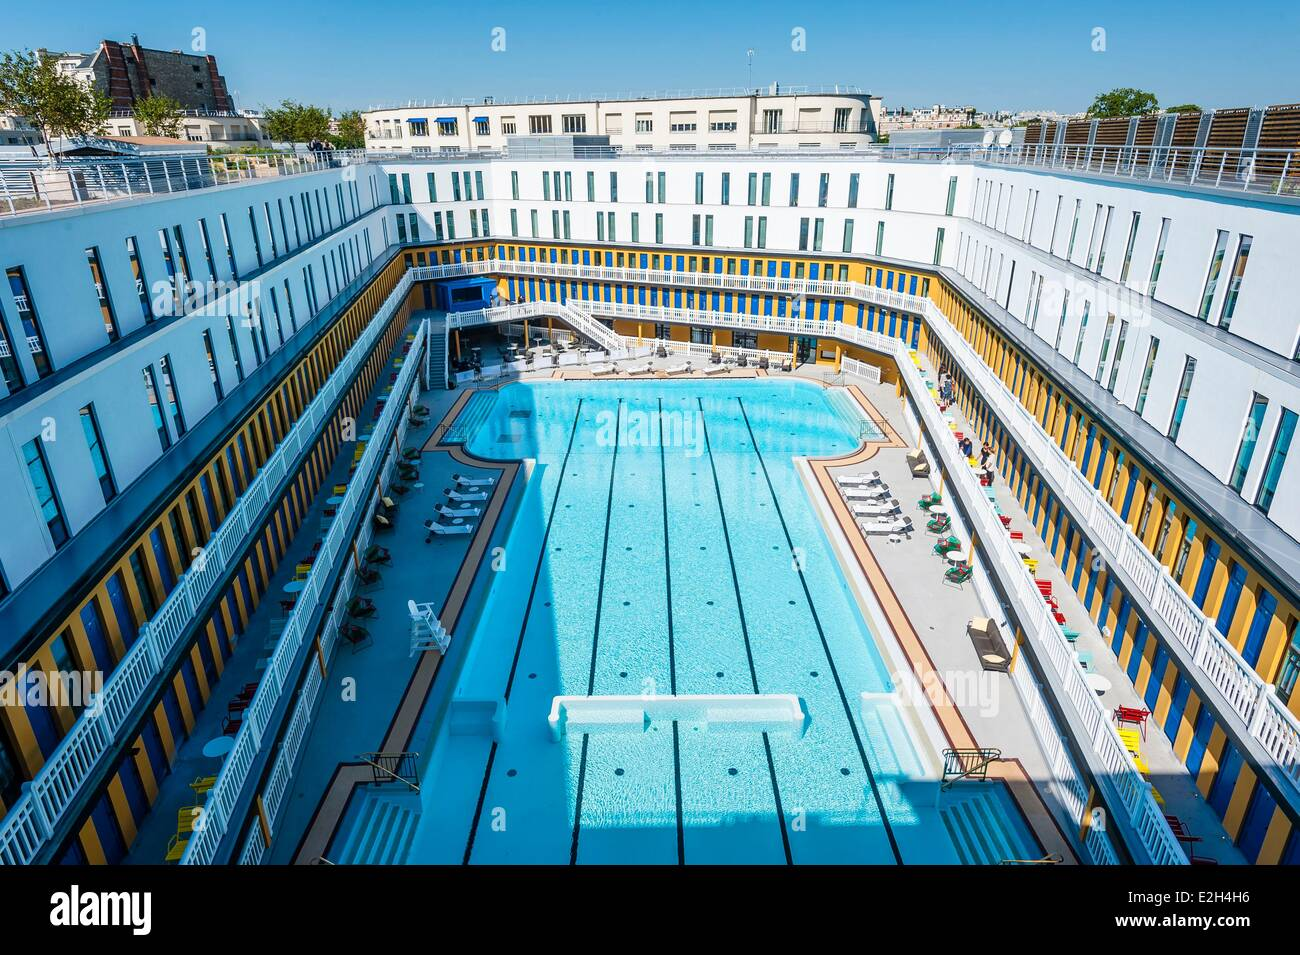 France paris hotel molitor swimming pool opening in may for Molitor swimming pool paris